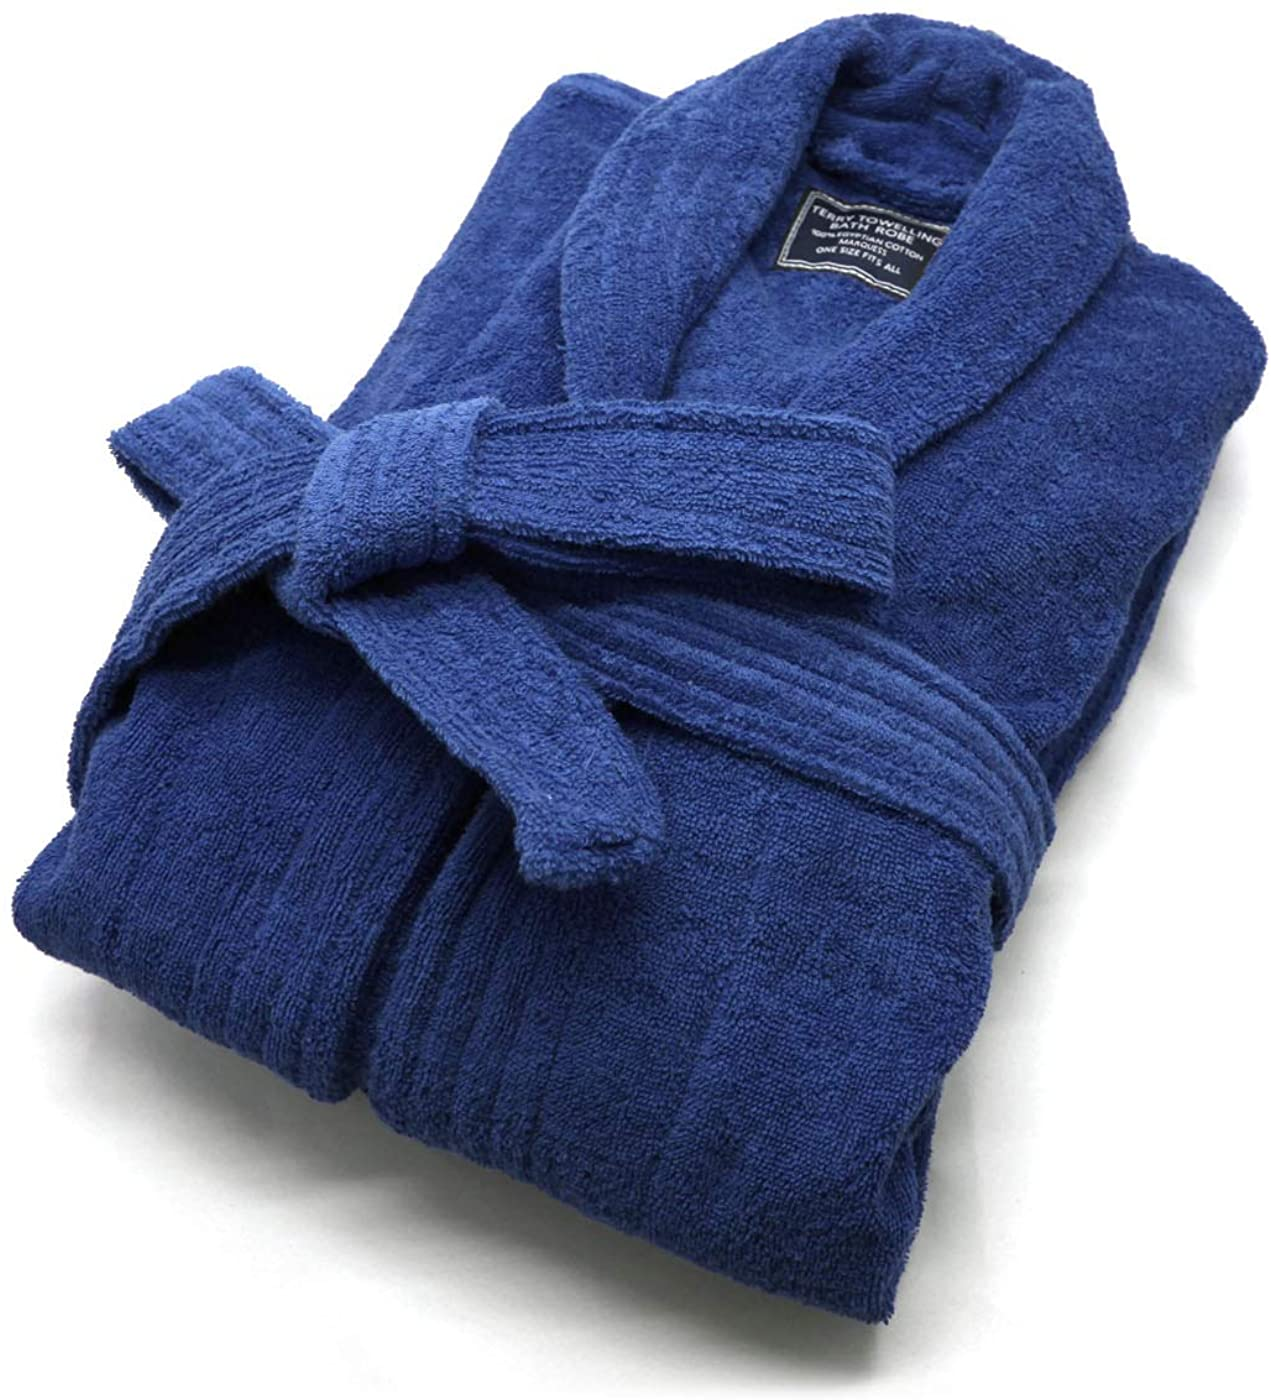 Marquess 100% Cotton Terry Bath Robe Men Women and Soft Limited Today's only time sale Warm